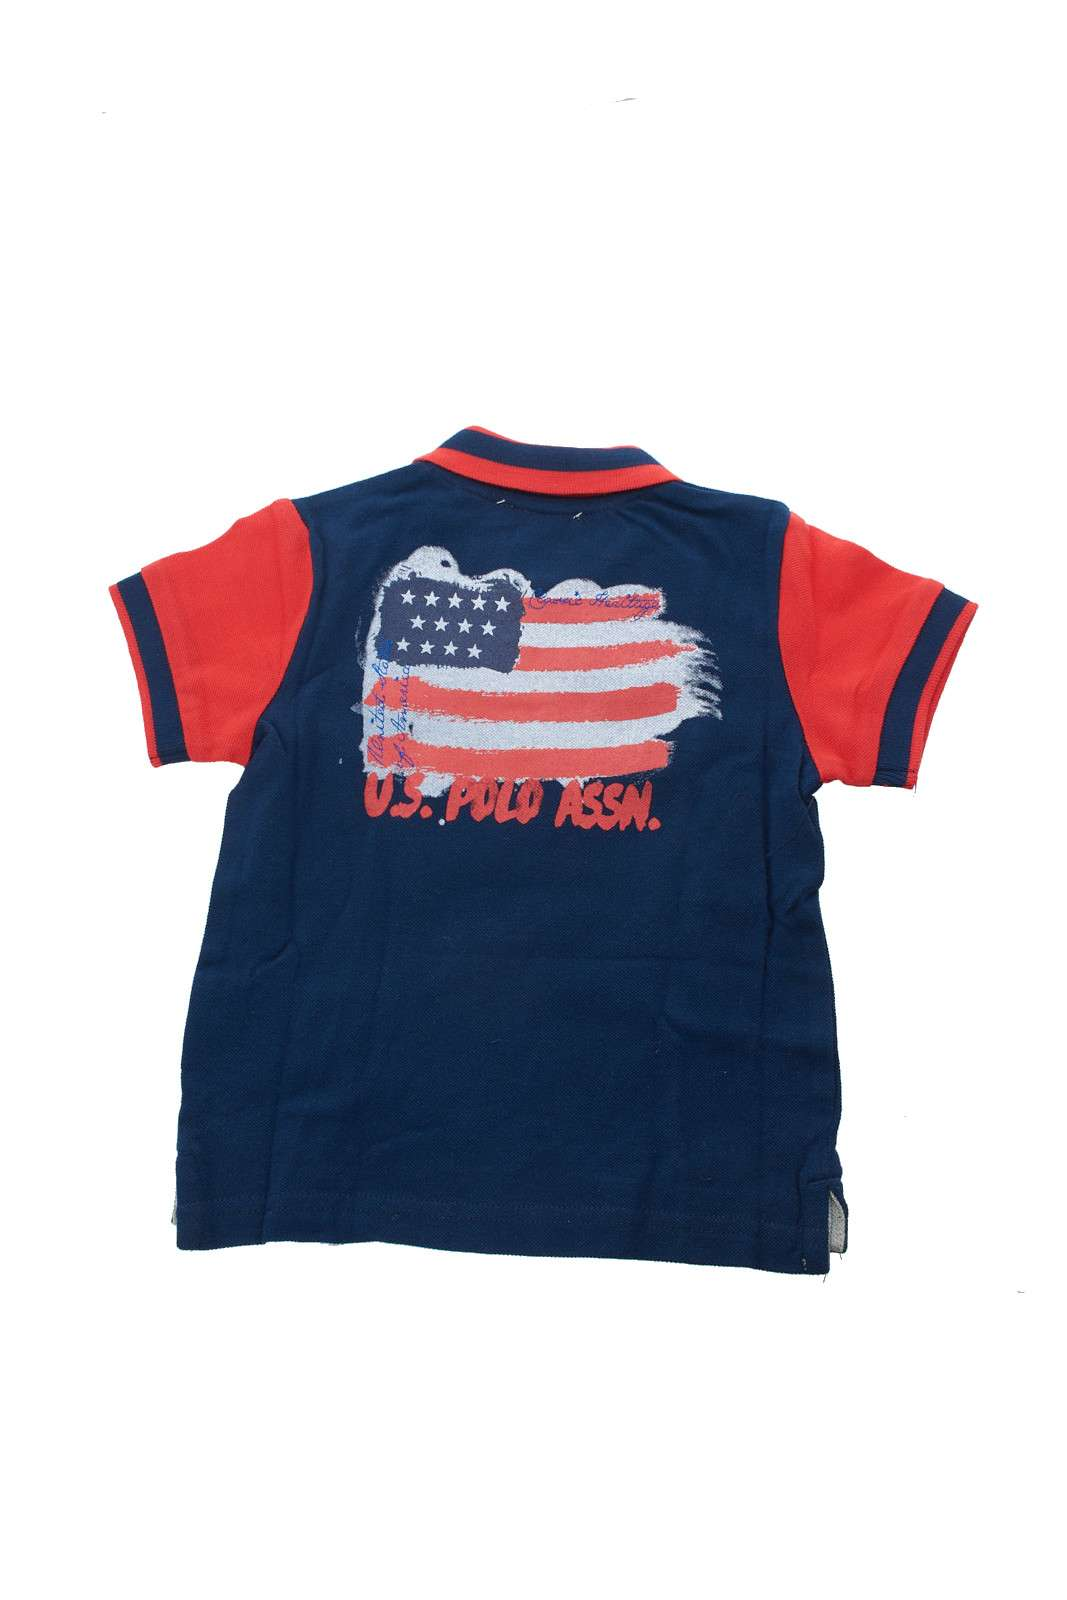 https://www.parmax.com/media/catalog/product/a/i/PE-outlet_parmax-polo-bambino-Us-Polo-38928-B.jpg